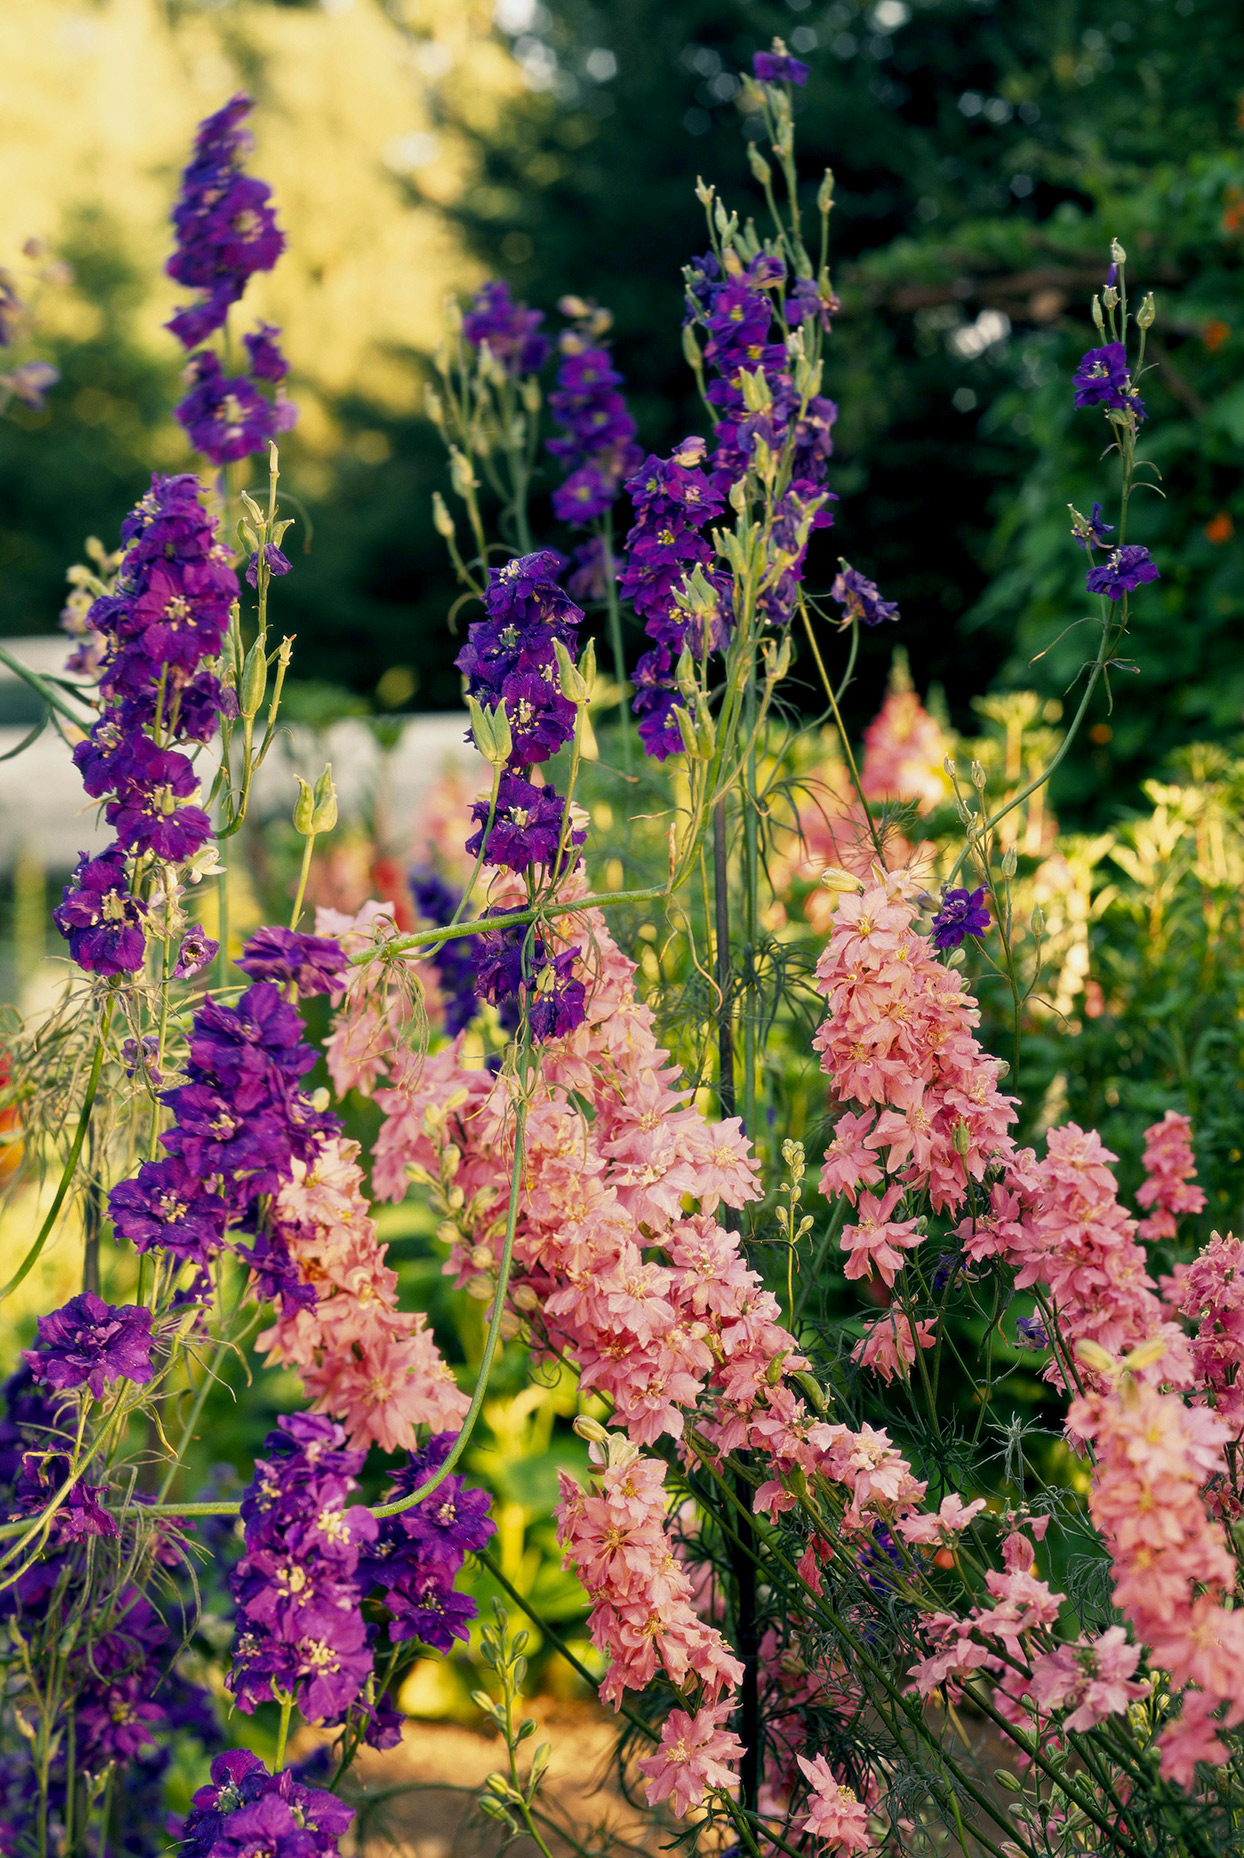 Purple and pink 'Imperial' larkspur